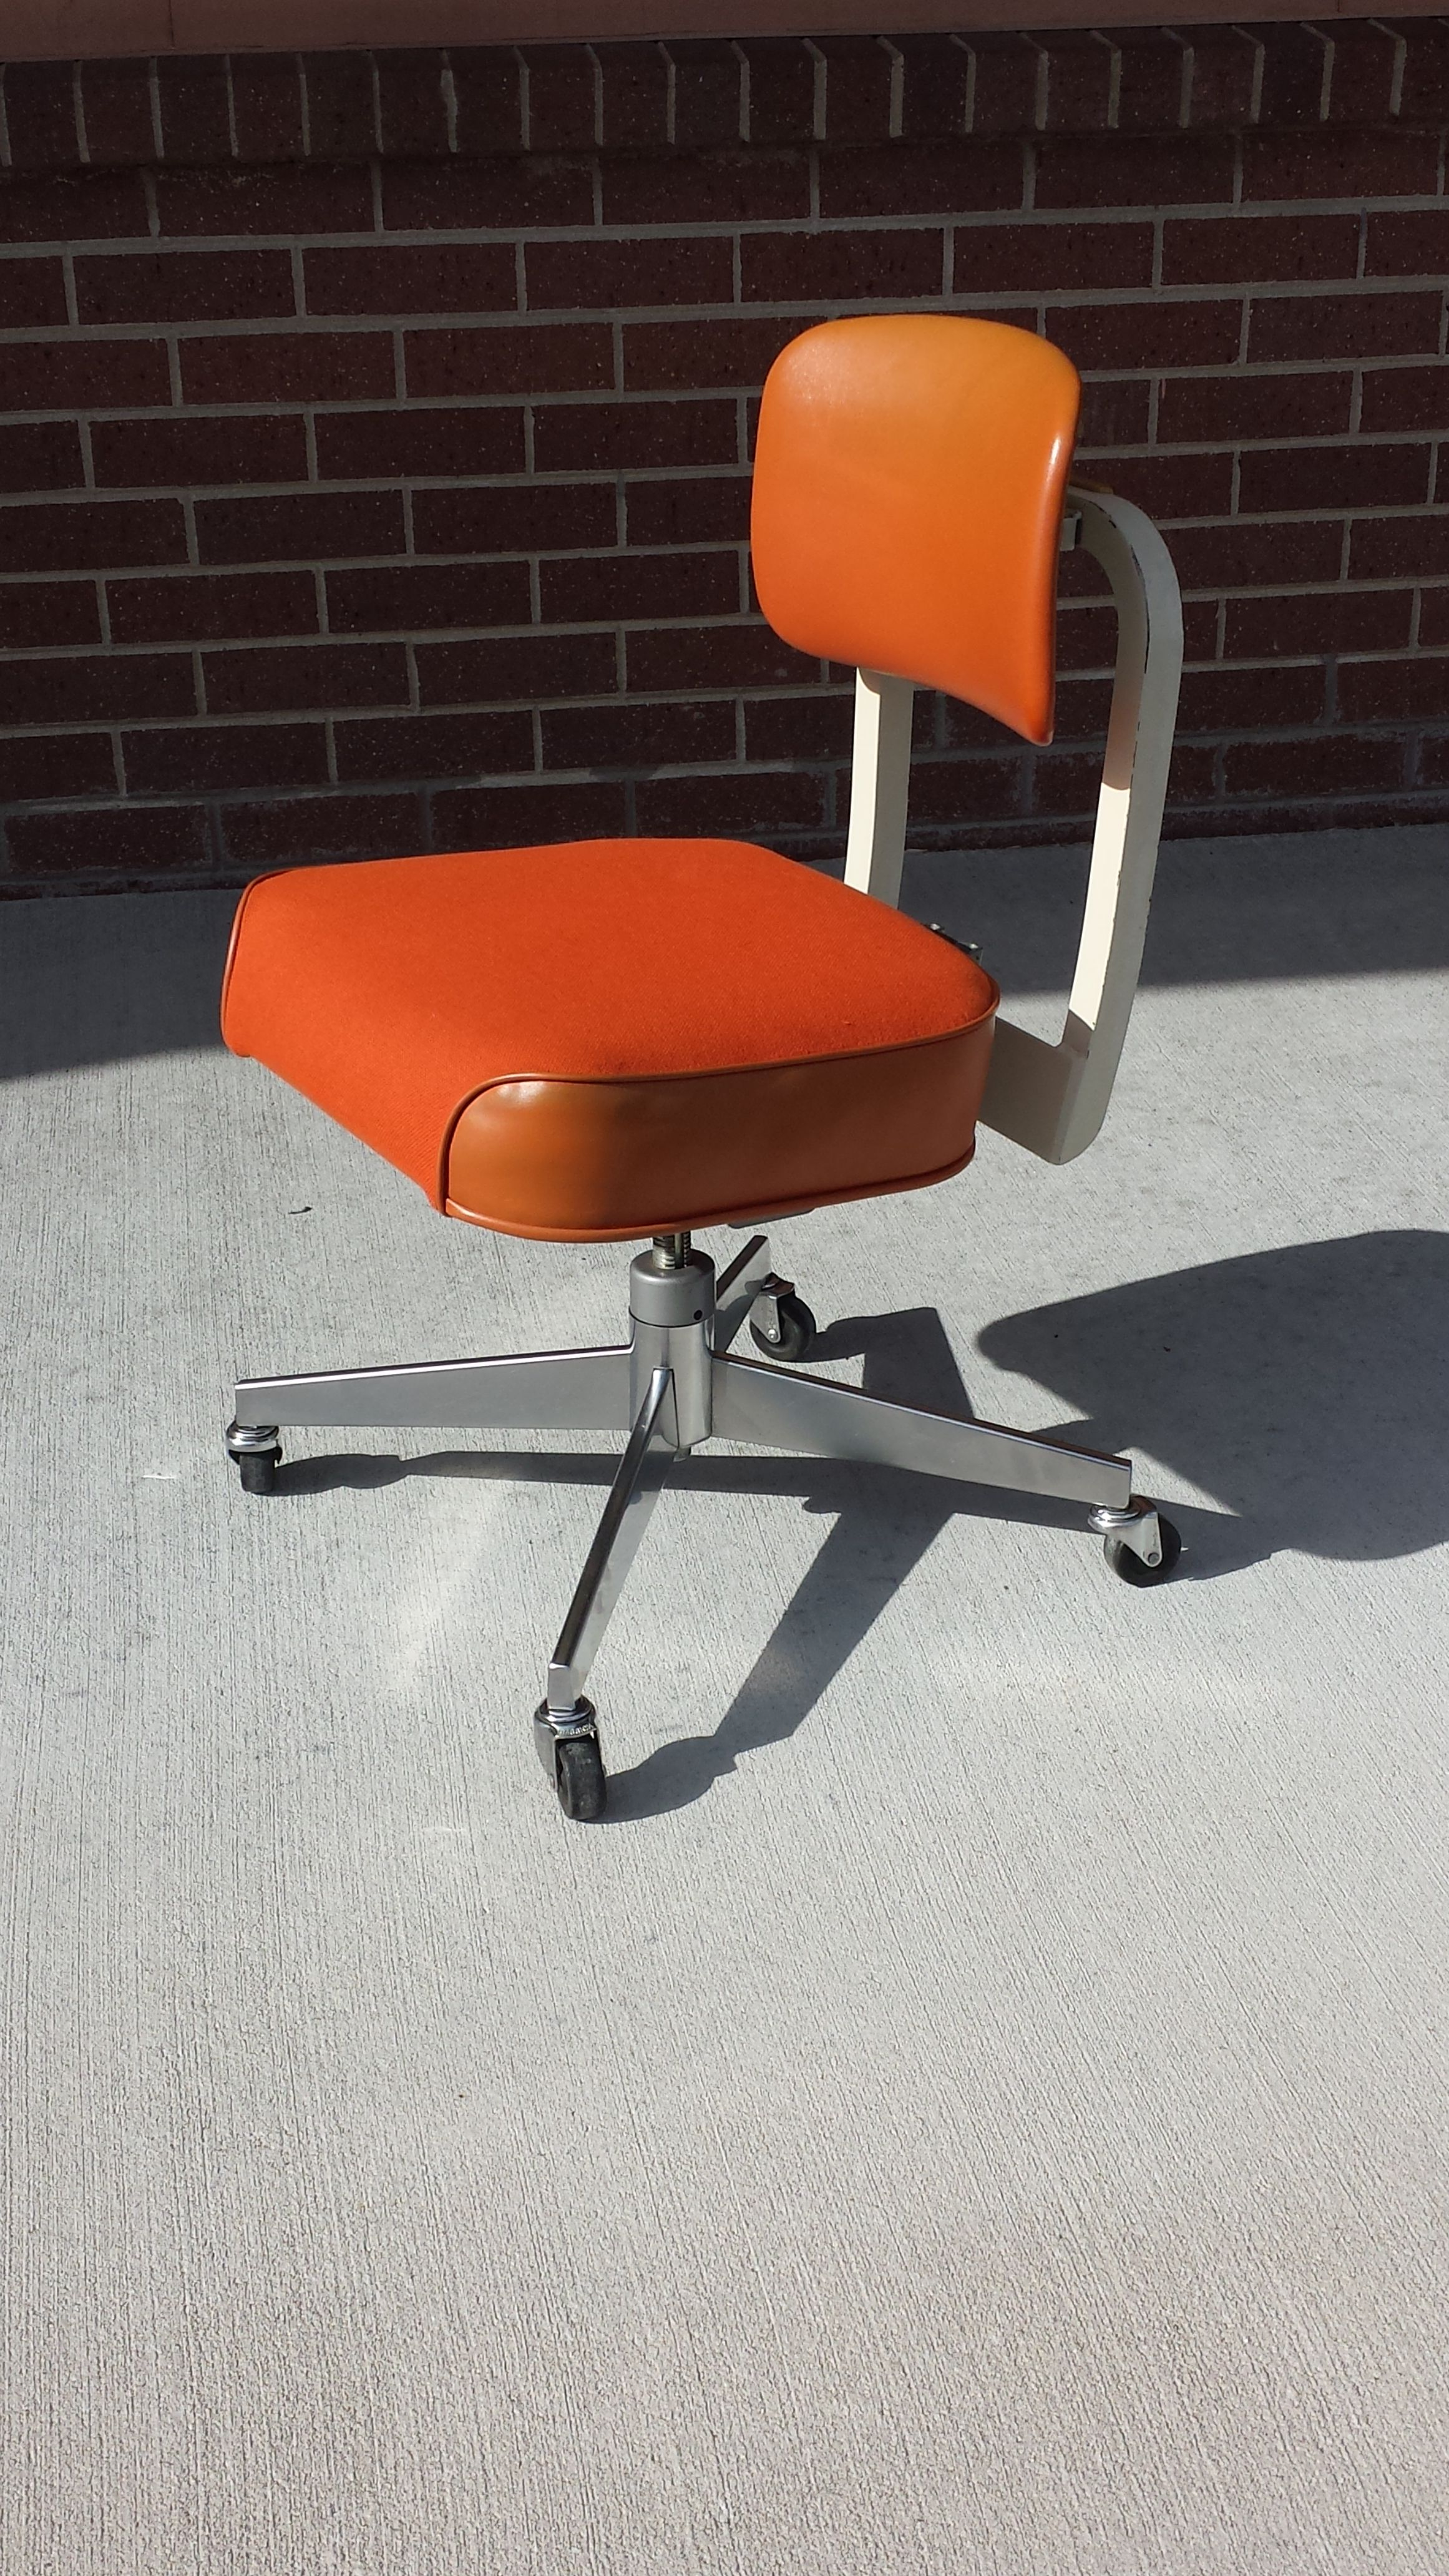 2f4929e41214d Vintage 1970's Orange Steelcase Office Chair | Office Chairs ...